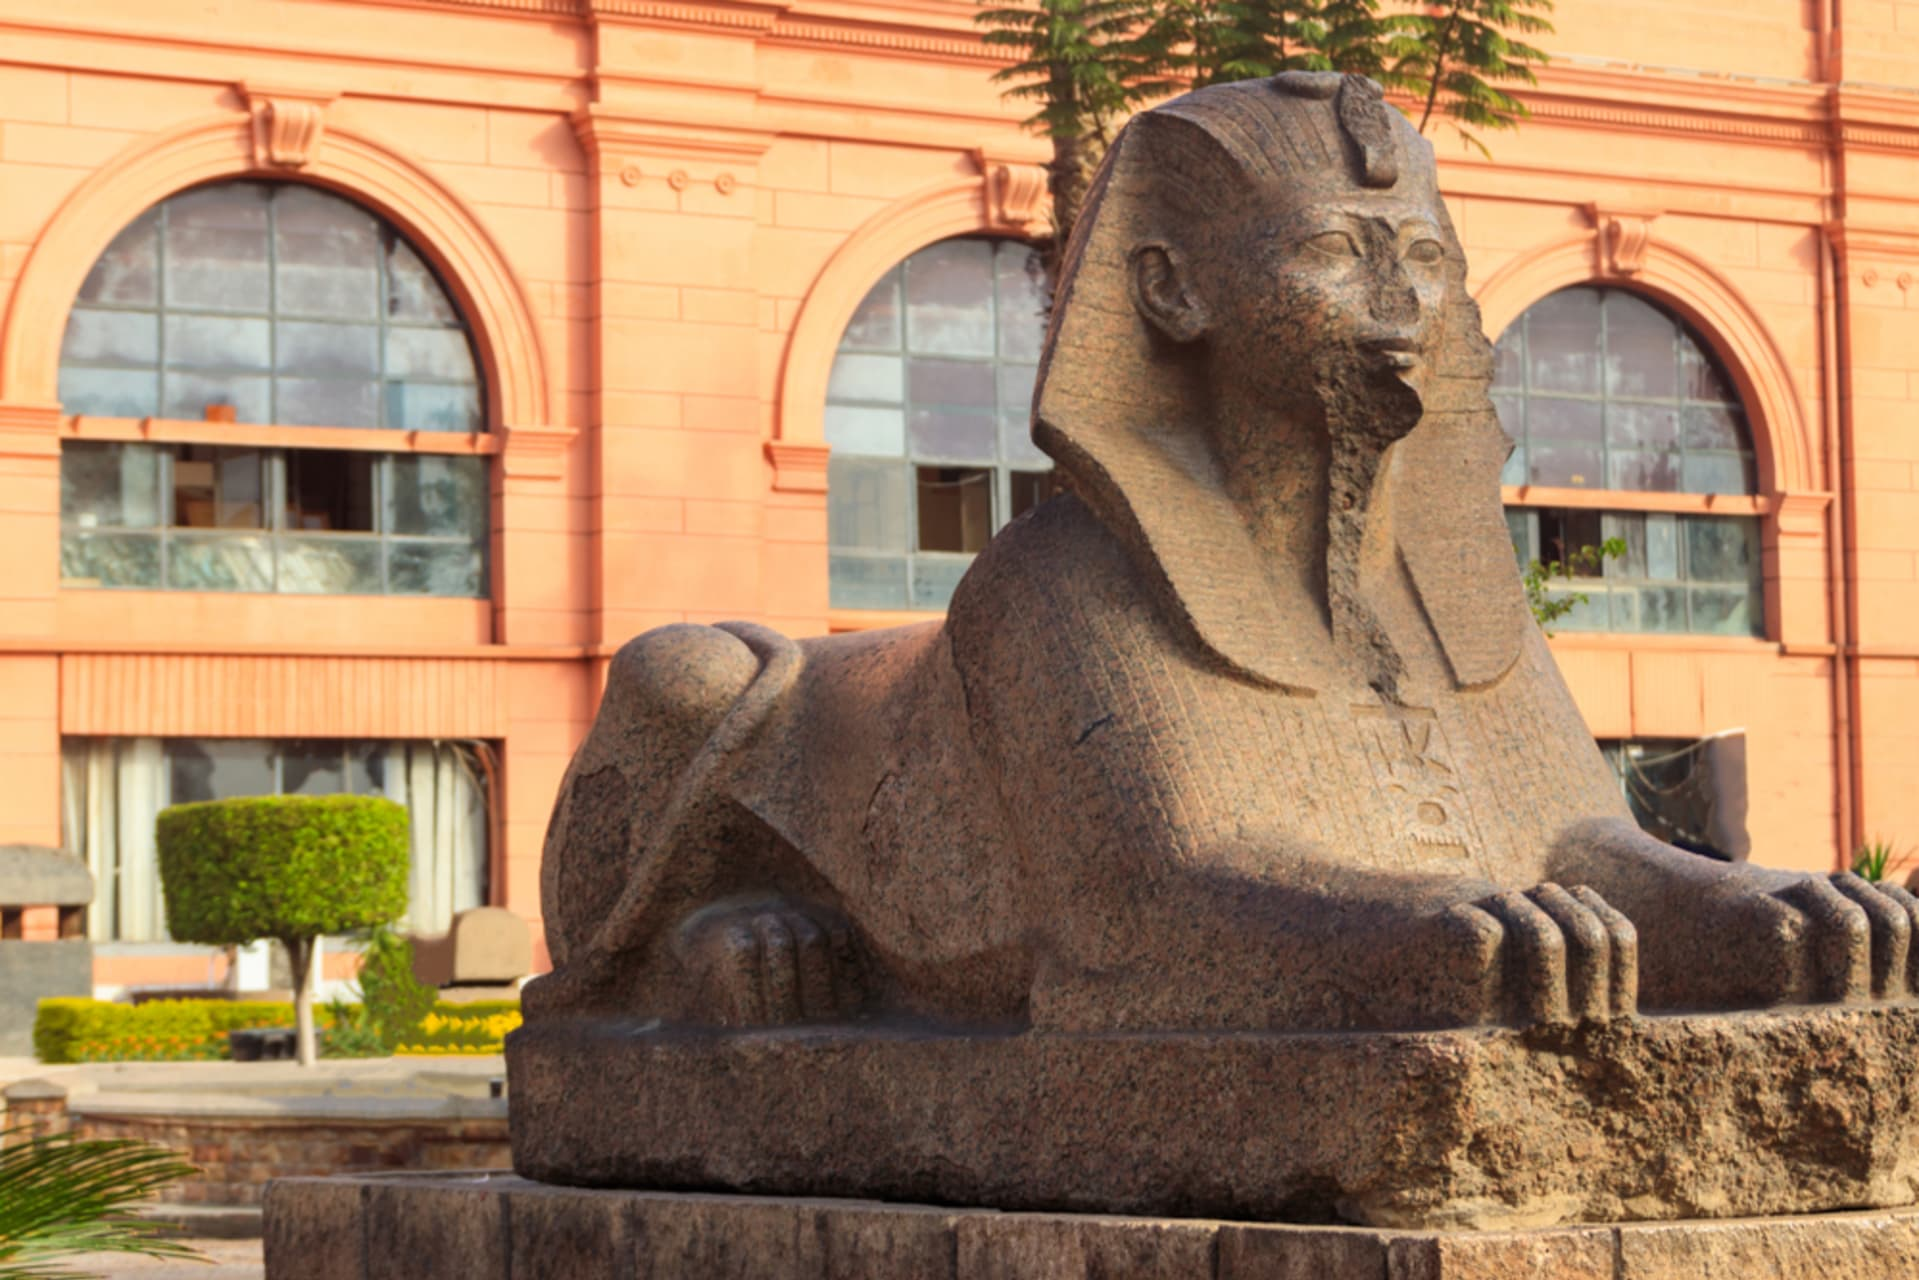 Cairo - Silent Tour of The National Museum Of Egyptian Civilization